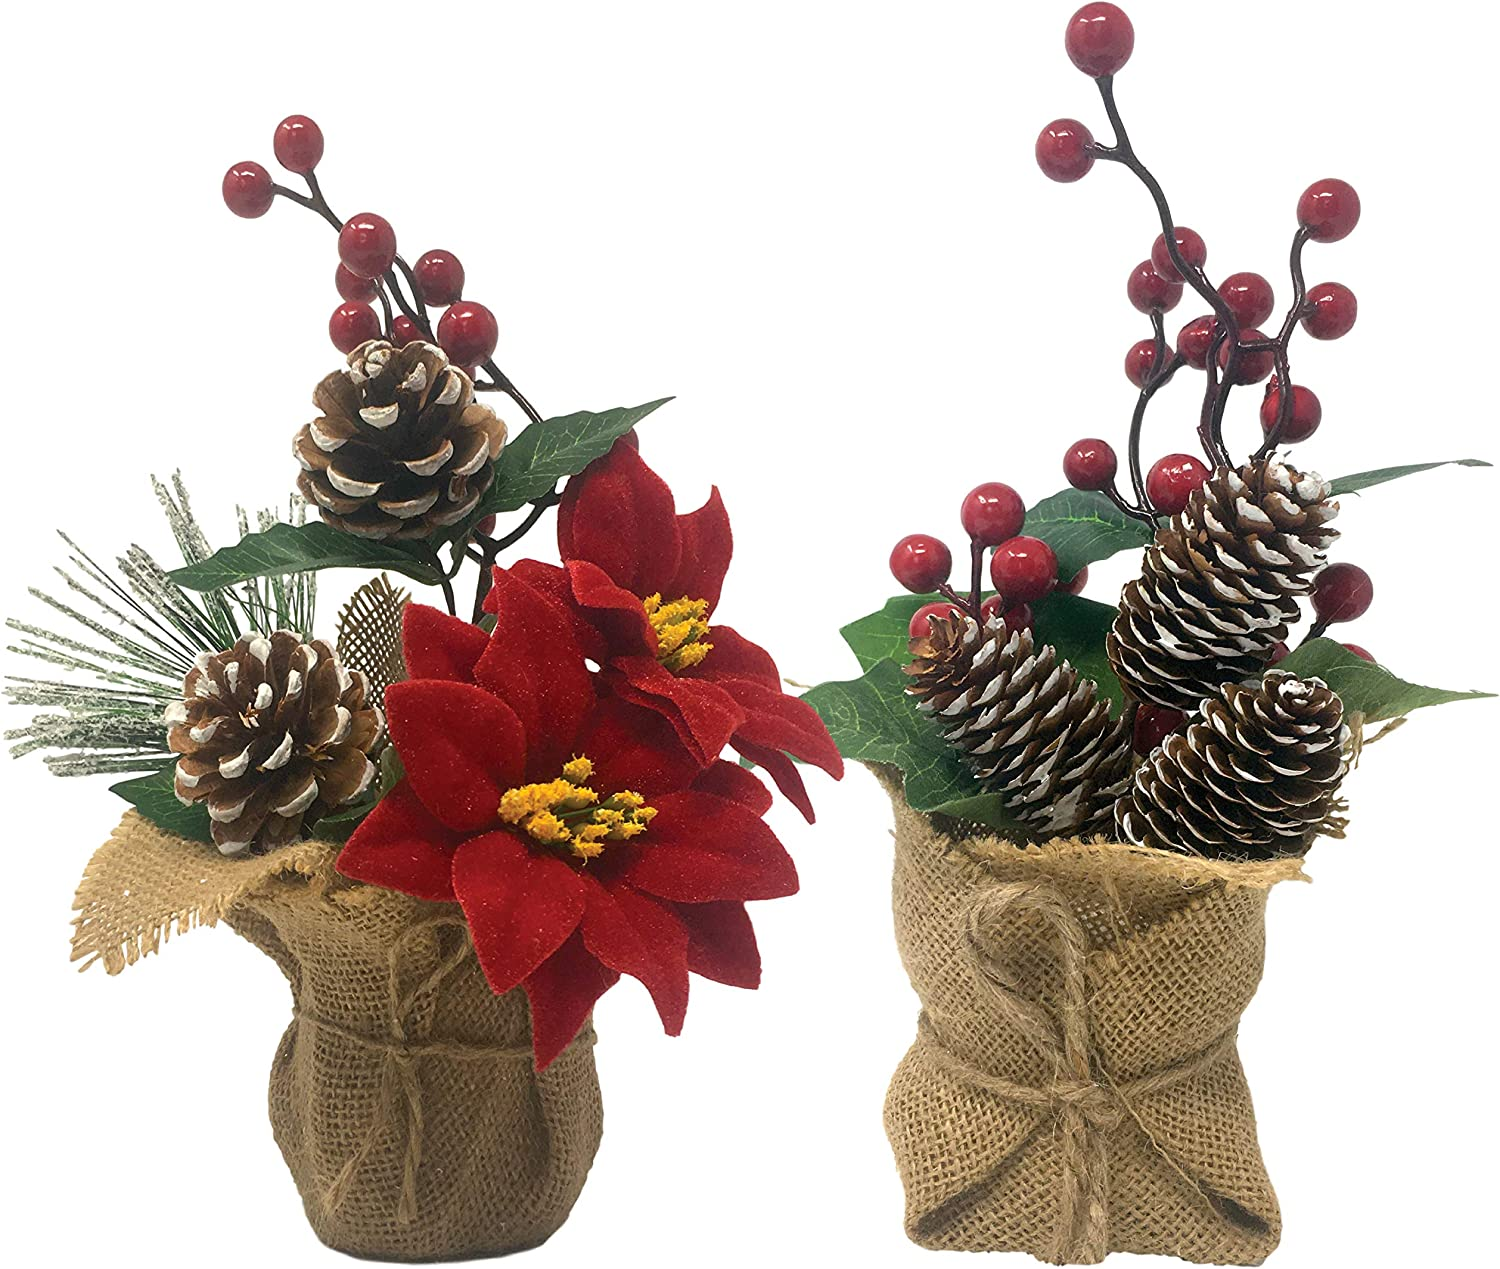 Small Potted Christmas Trees - Set of 2 Tabletop Arrangements - Red Poinsettia, Berries and Pinecones - Burlap Base Farmhouse Décor - Approximately 10 Inches Tall